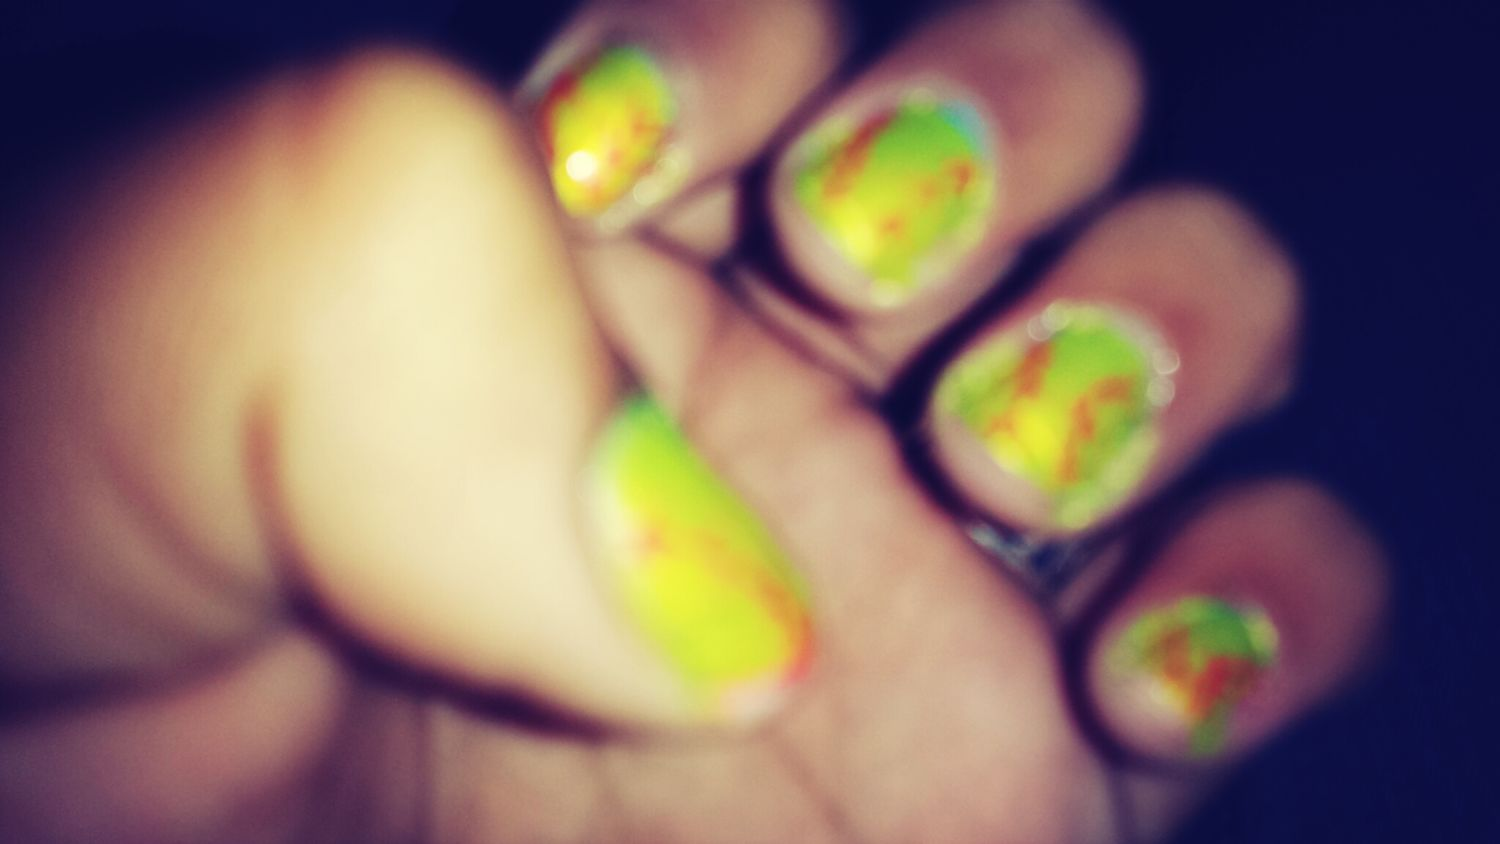 my soft ball nails soft ball is my spirt its my passion with out it i dont know what i would do i just love it ♥ Bobcats Myteam Lovemyteam Softball<3